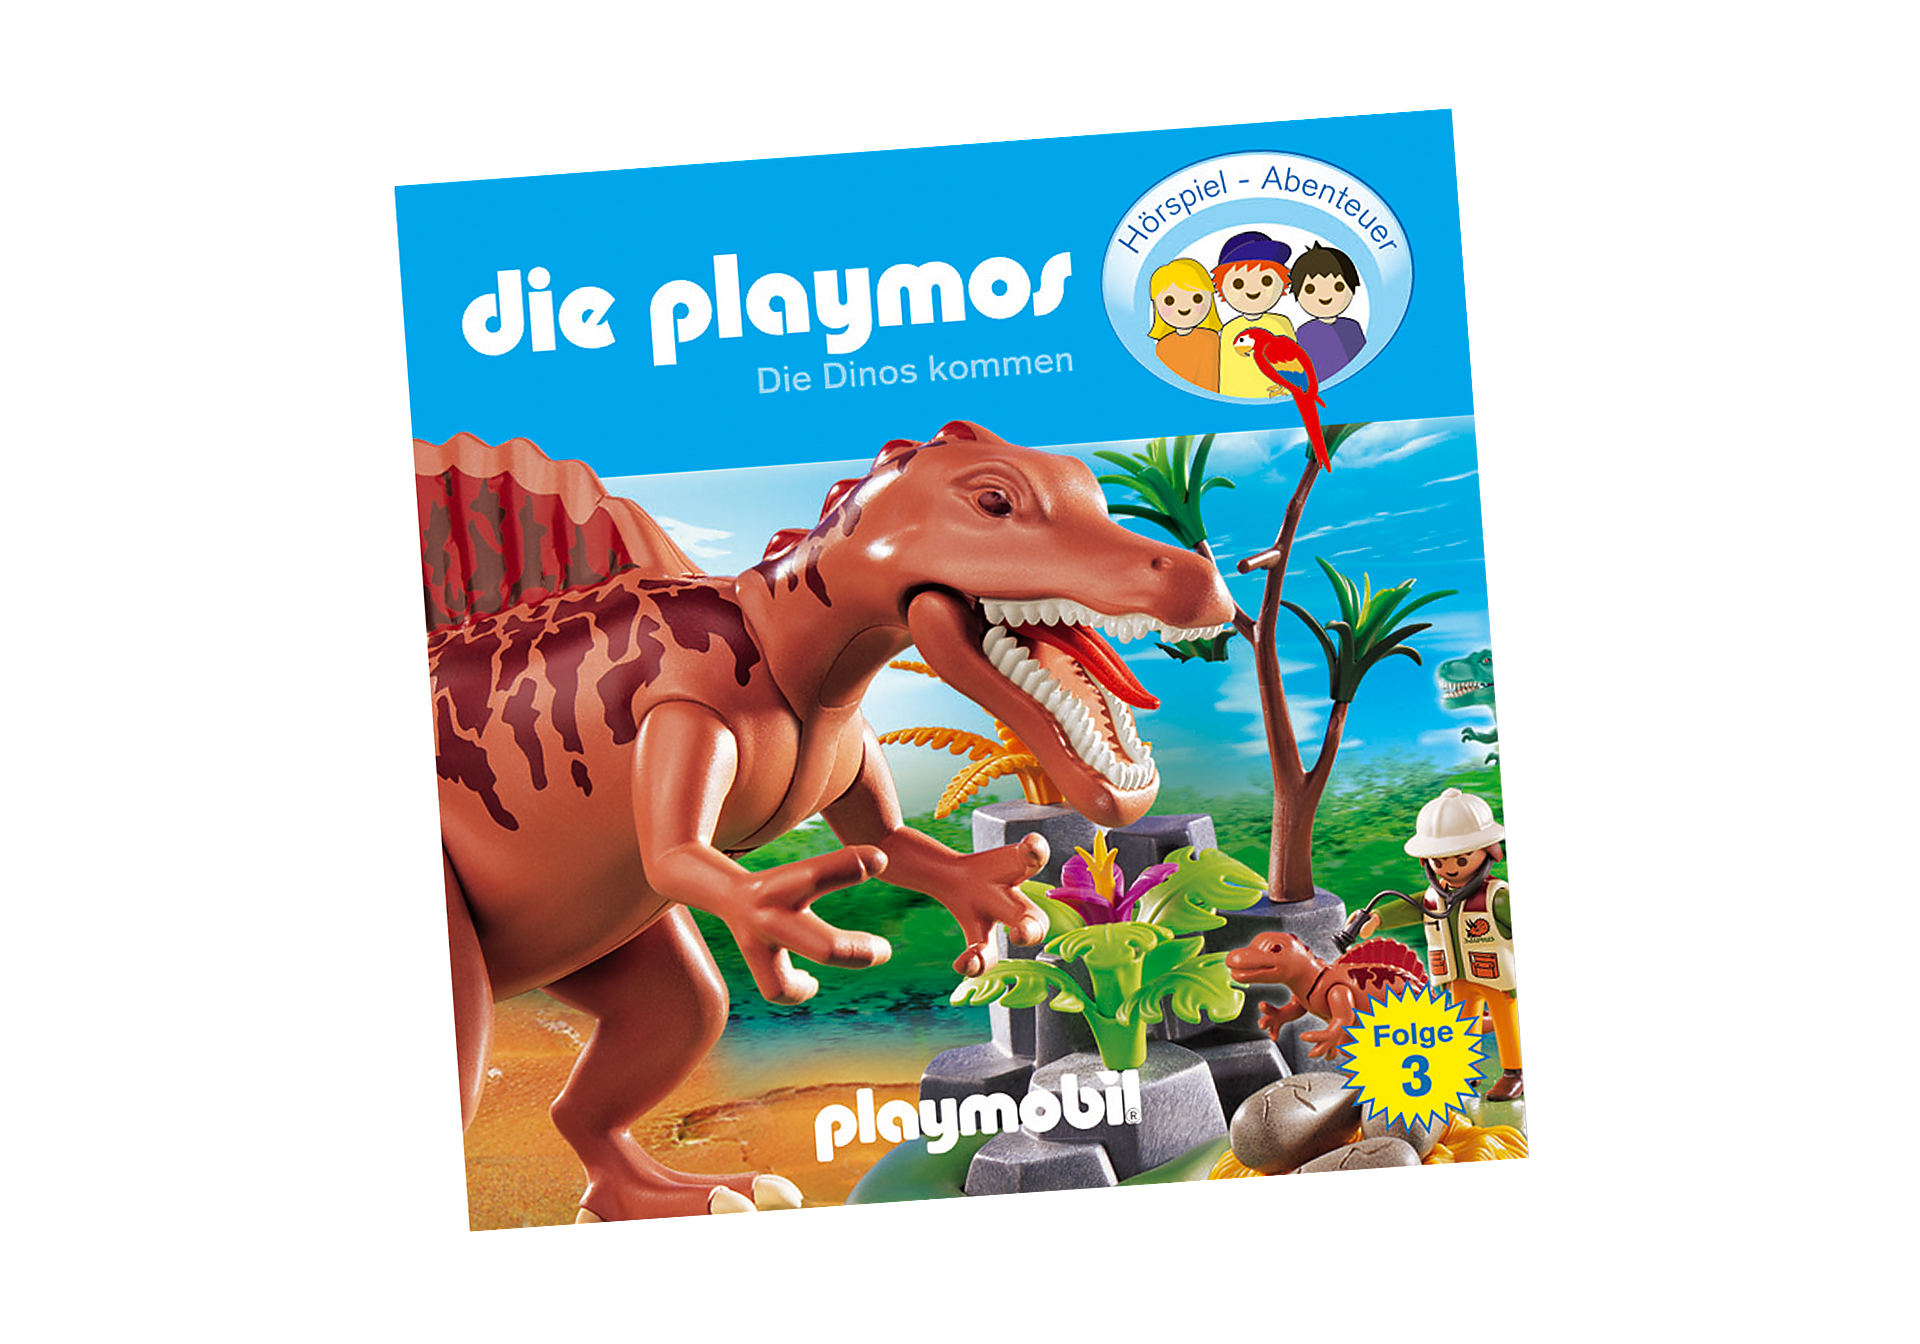 http://media.playmobil.com/i/playmobil/80132_product_detail/Die Dinos kommen (3) - CD